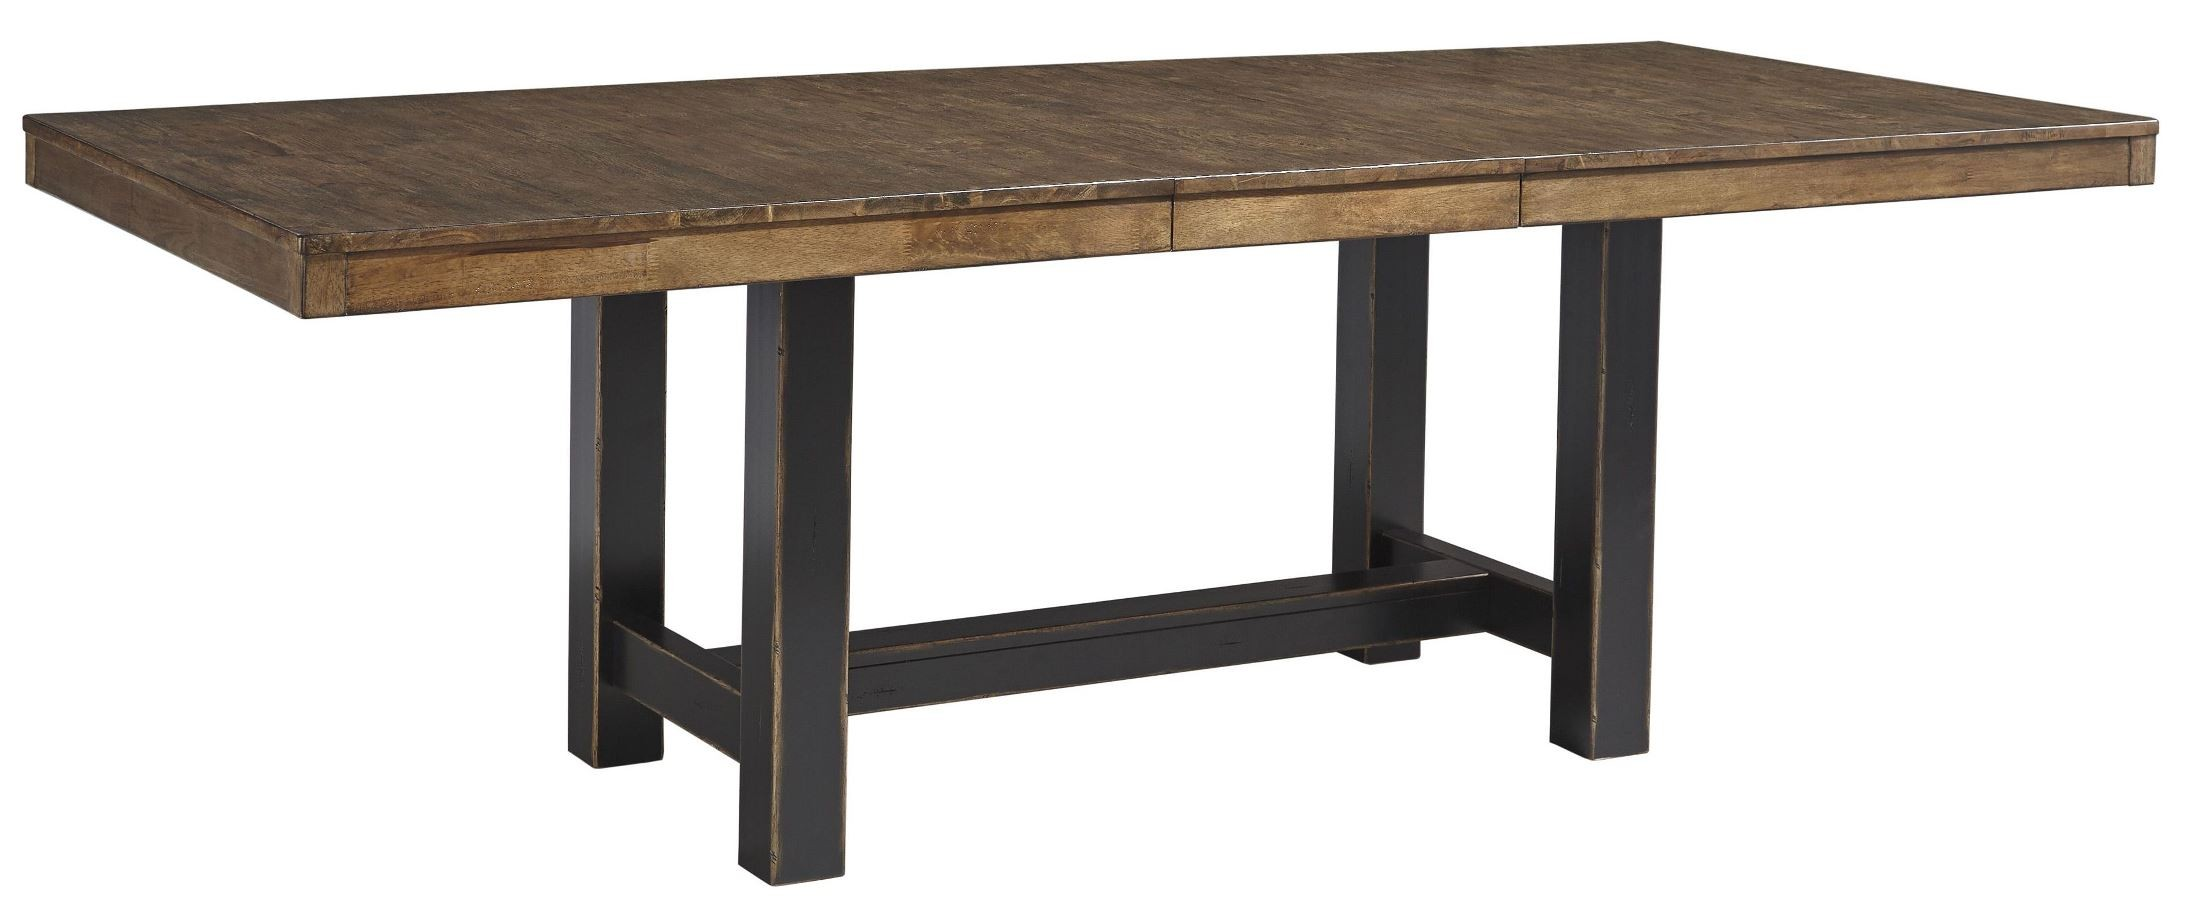 Emerfield Two tone Brown Rectangular Extendable Dining  : d563 35 sw from colemanfurniture.com size 2200 x 912 jpeg 168kB